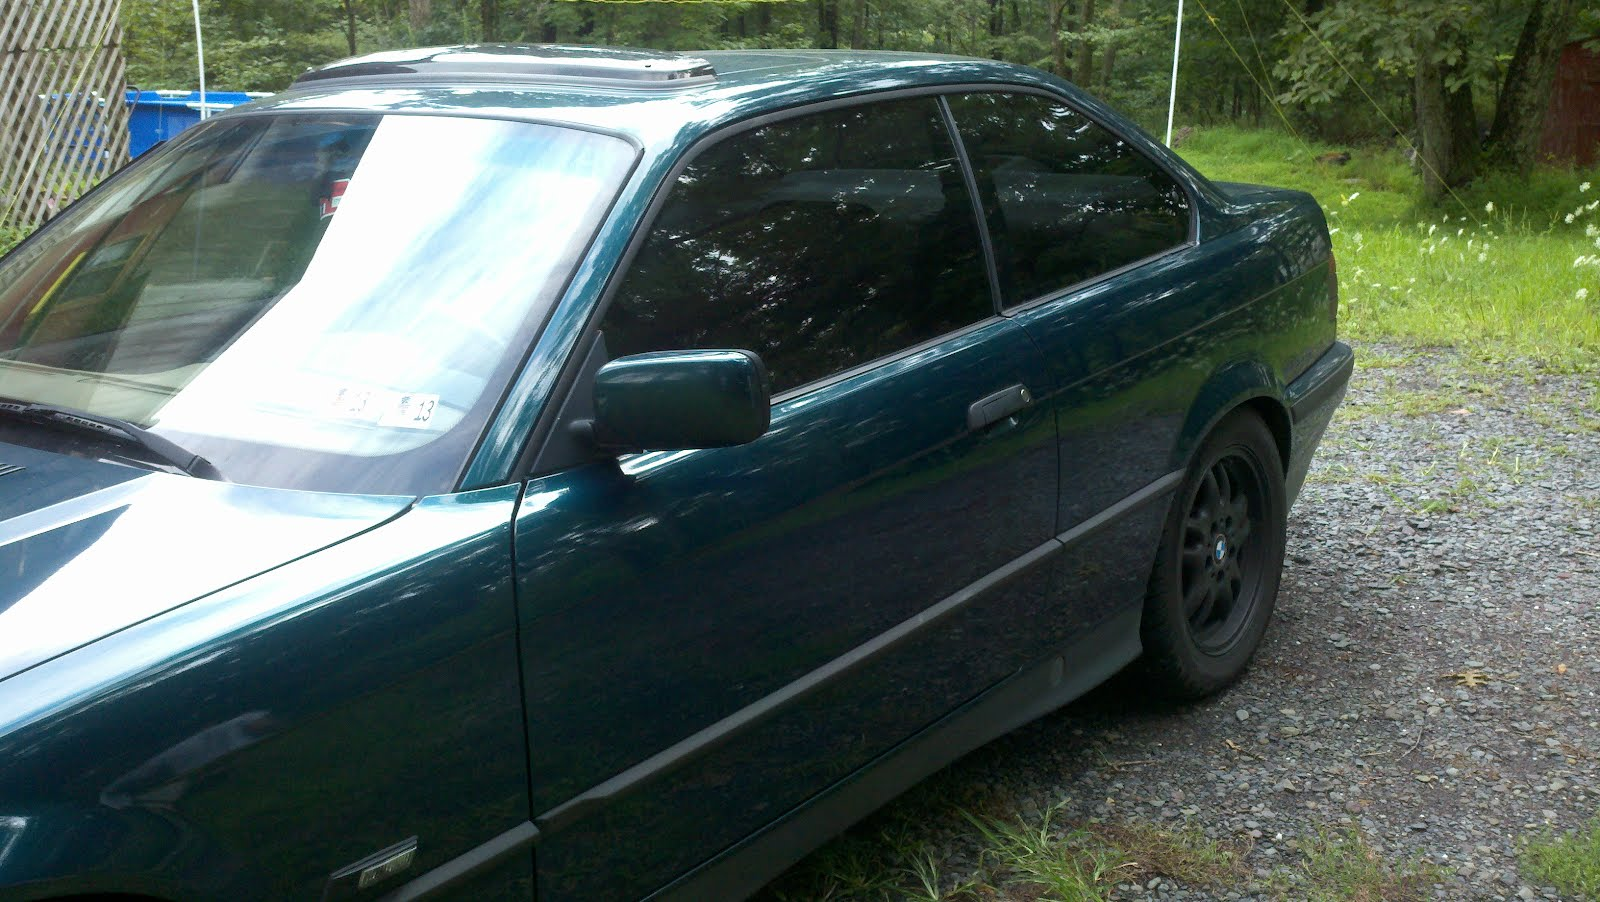 1995 Bmw 325is 20 Window Tint With Flat Black Plasti Dip